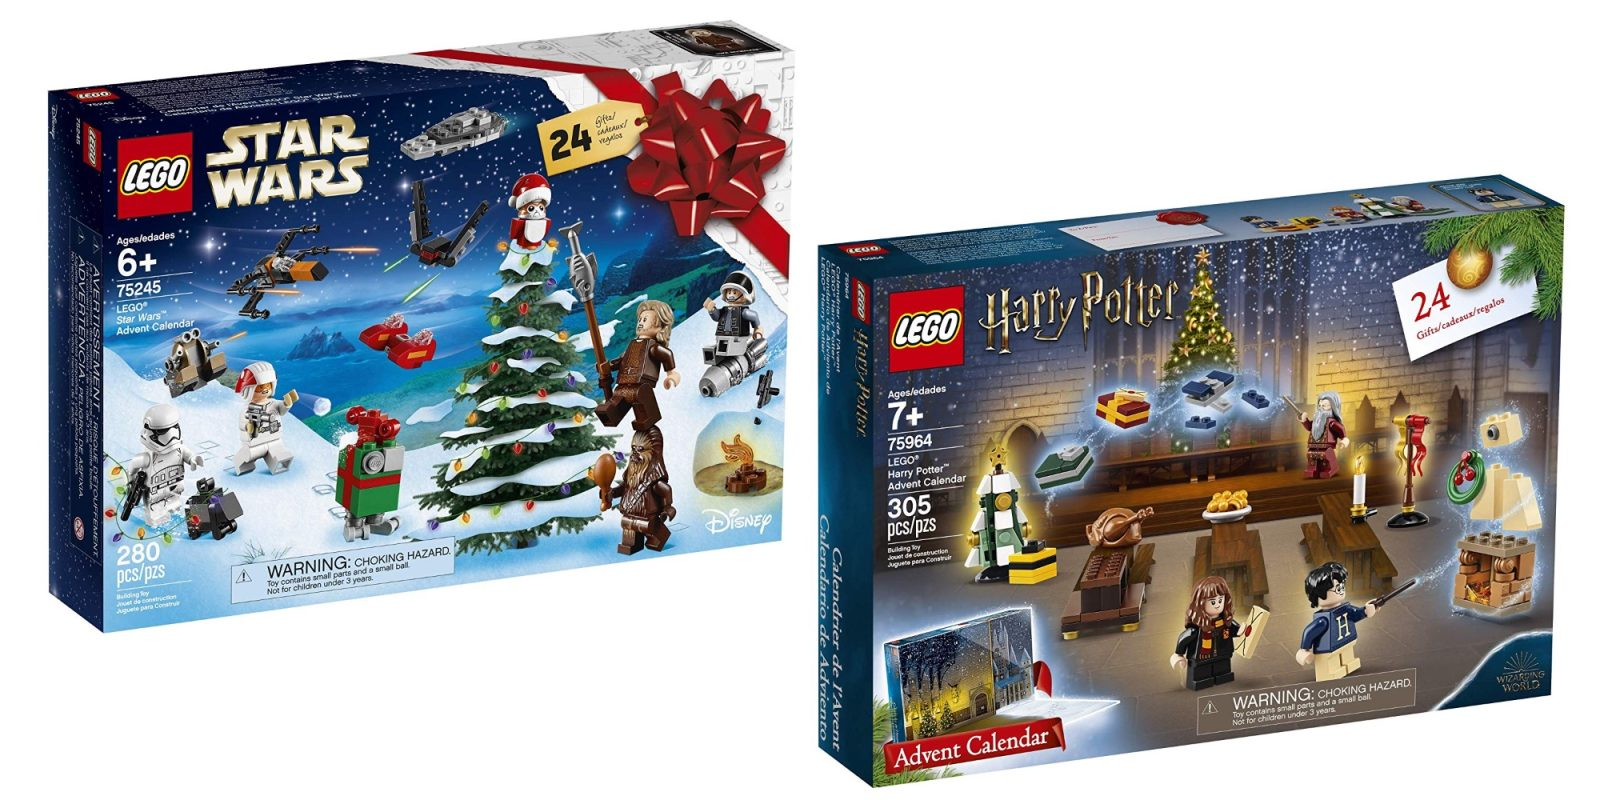 Calendrier Avent Lego Star Wars 2019.Lego S New Star Wars Harry Potter Advent Calendars Fall To